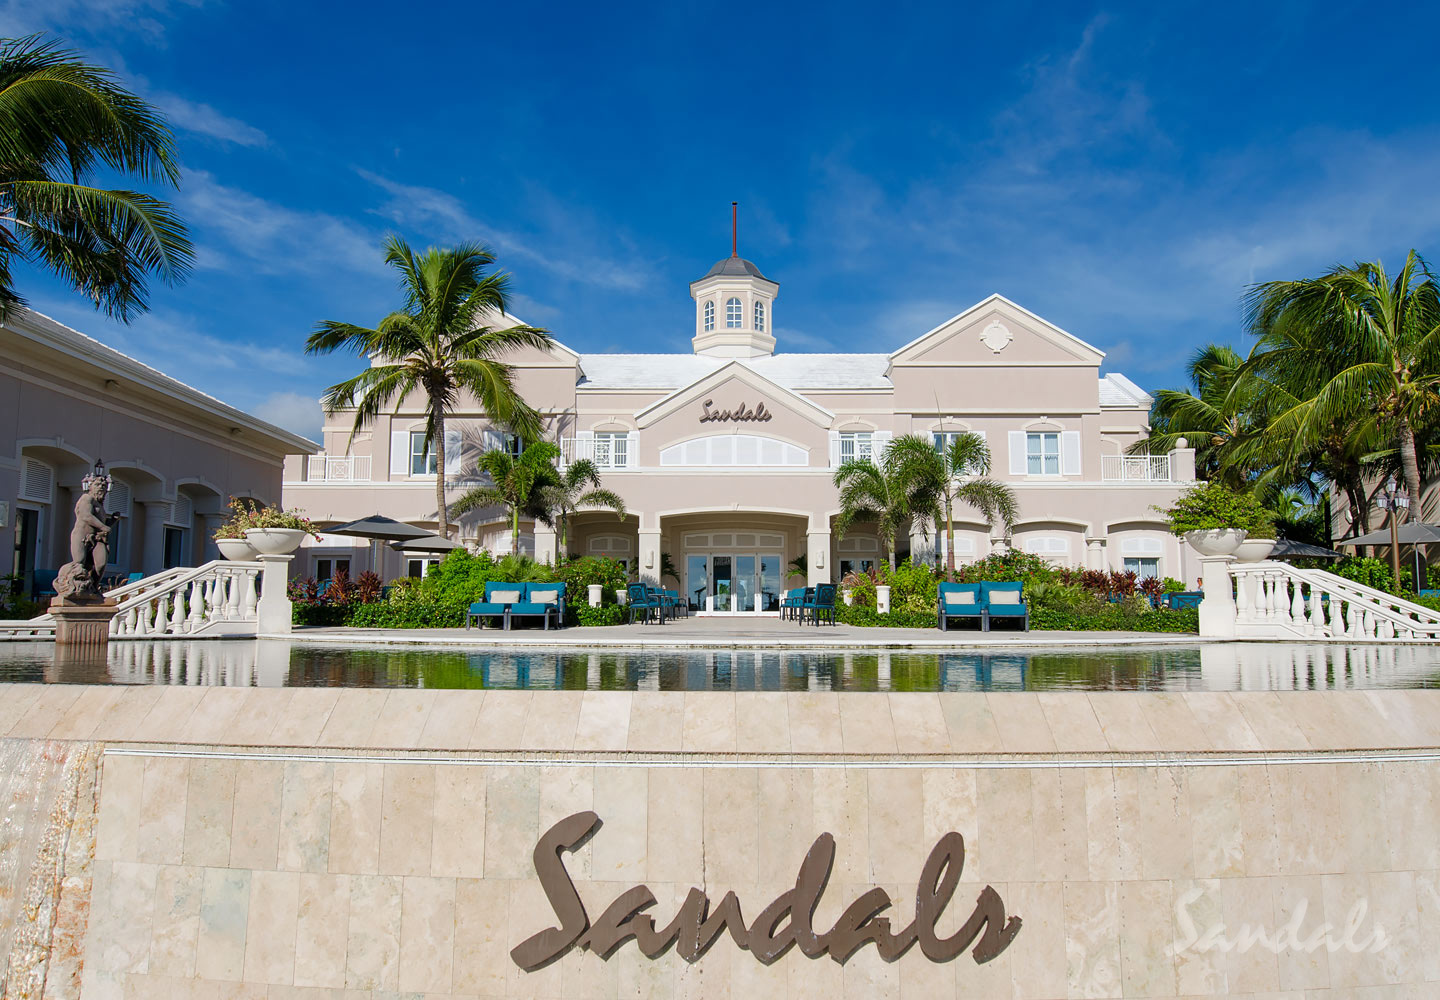 Travel Agency All-Inclusive Resort Sandals Emerald Bay 058